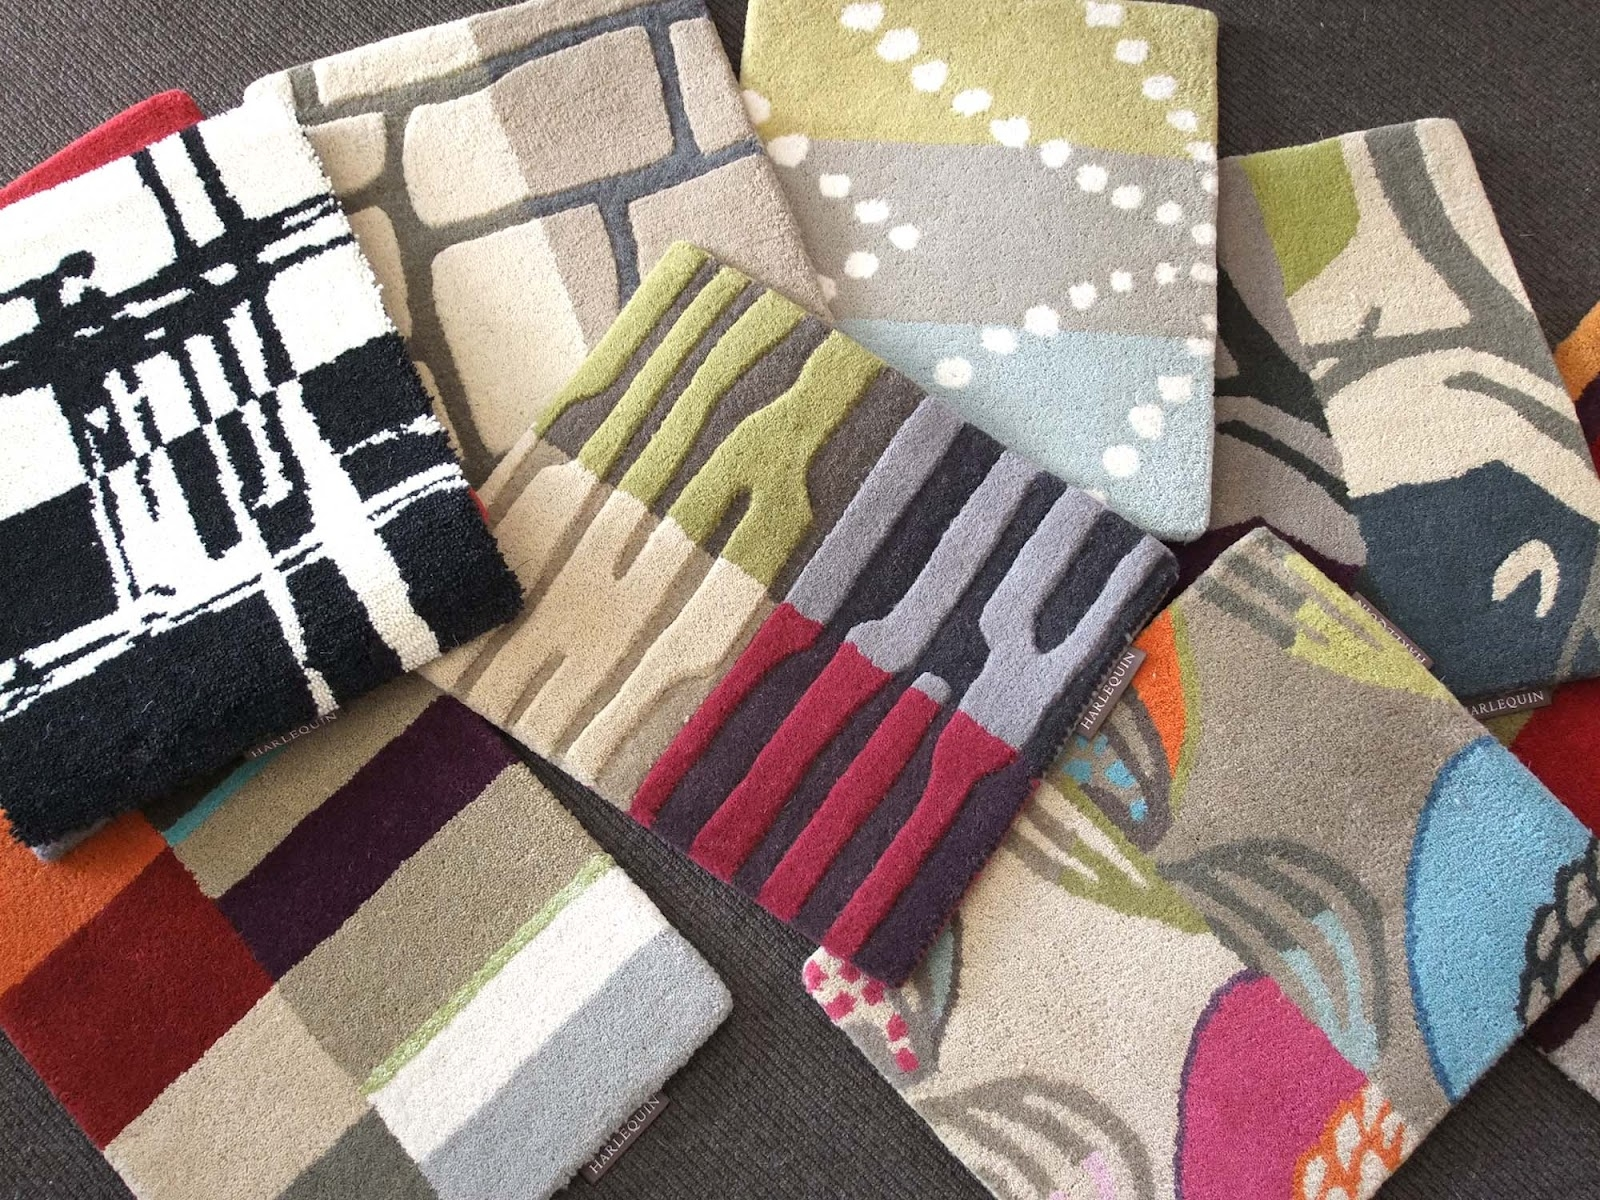 Esdesign Harlequin Rugs Within Harlequin Rugs (Image 1 of 15)